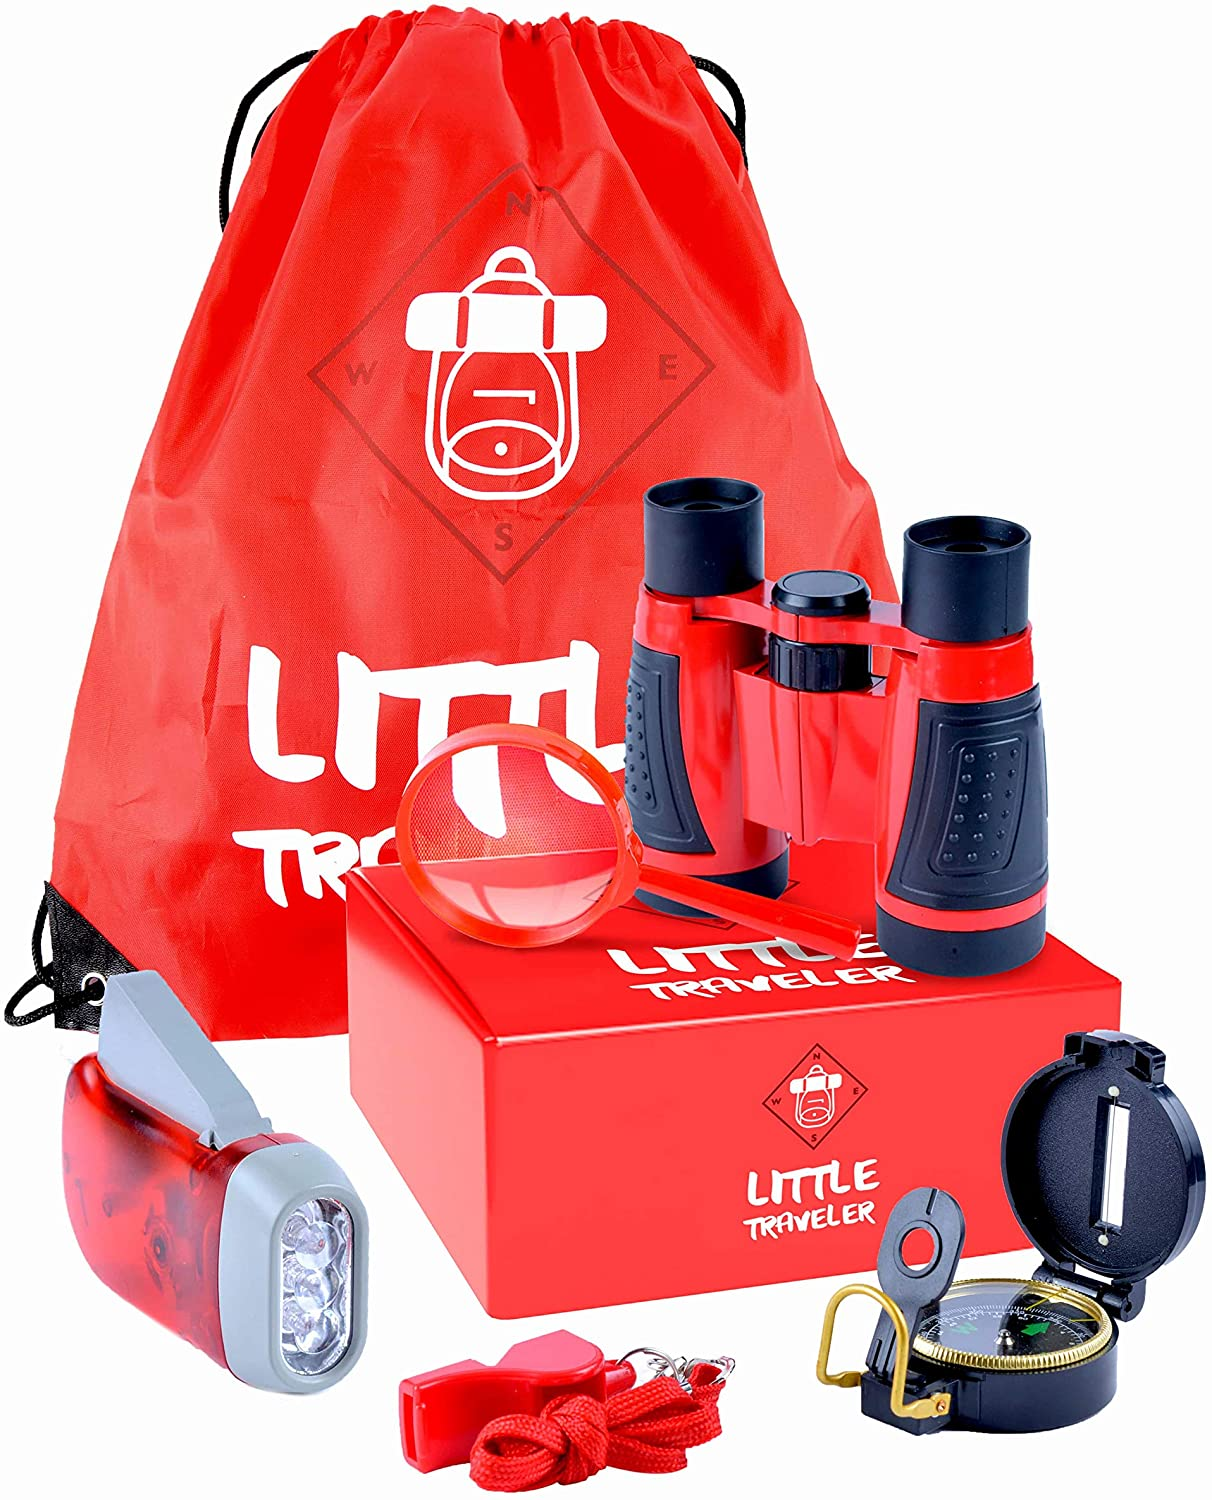 Outdoor Toys for Kids - Exploration kit [6 peaces] Non-Allergic Materials | Explorer Gear Play Set is great for Kids' Camping - Binoculars, Magnifying Glass, Whistle, Flashlight, Compass, Backpack.